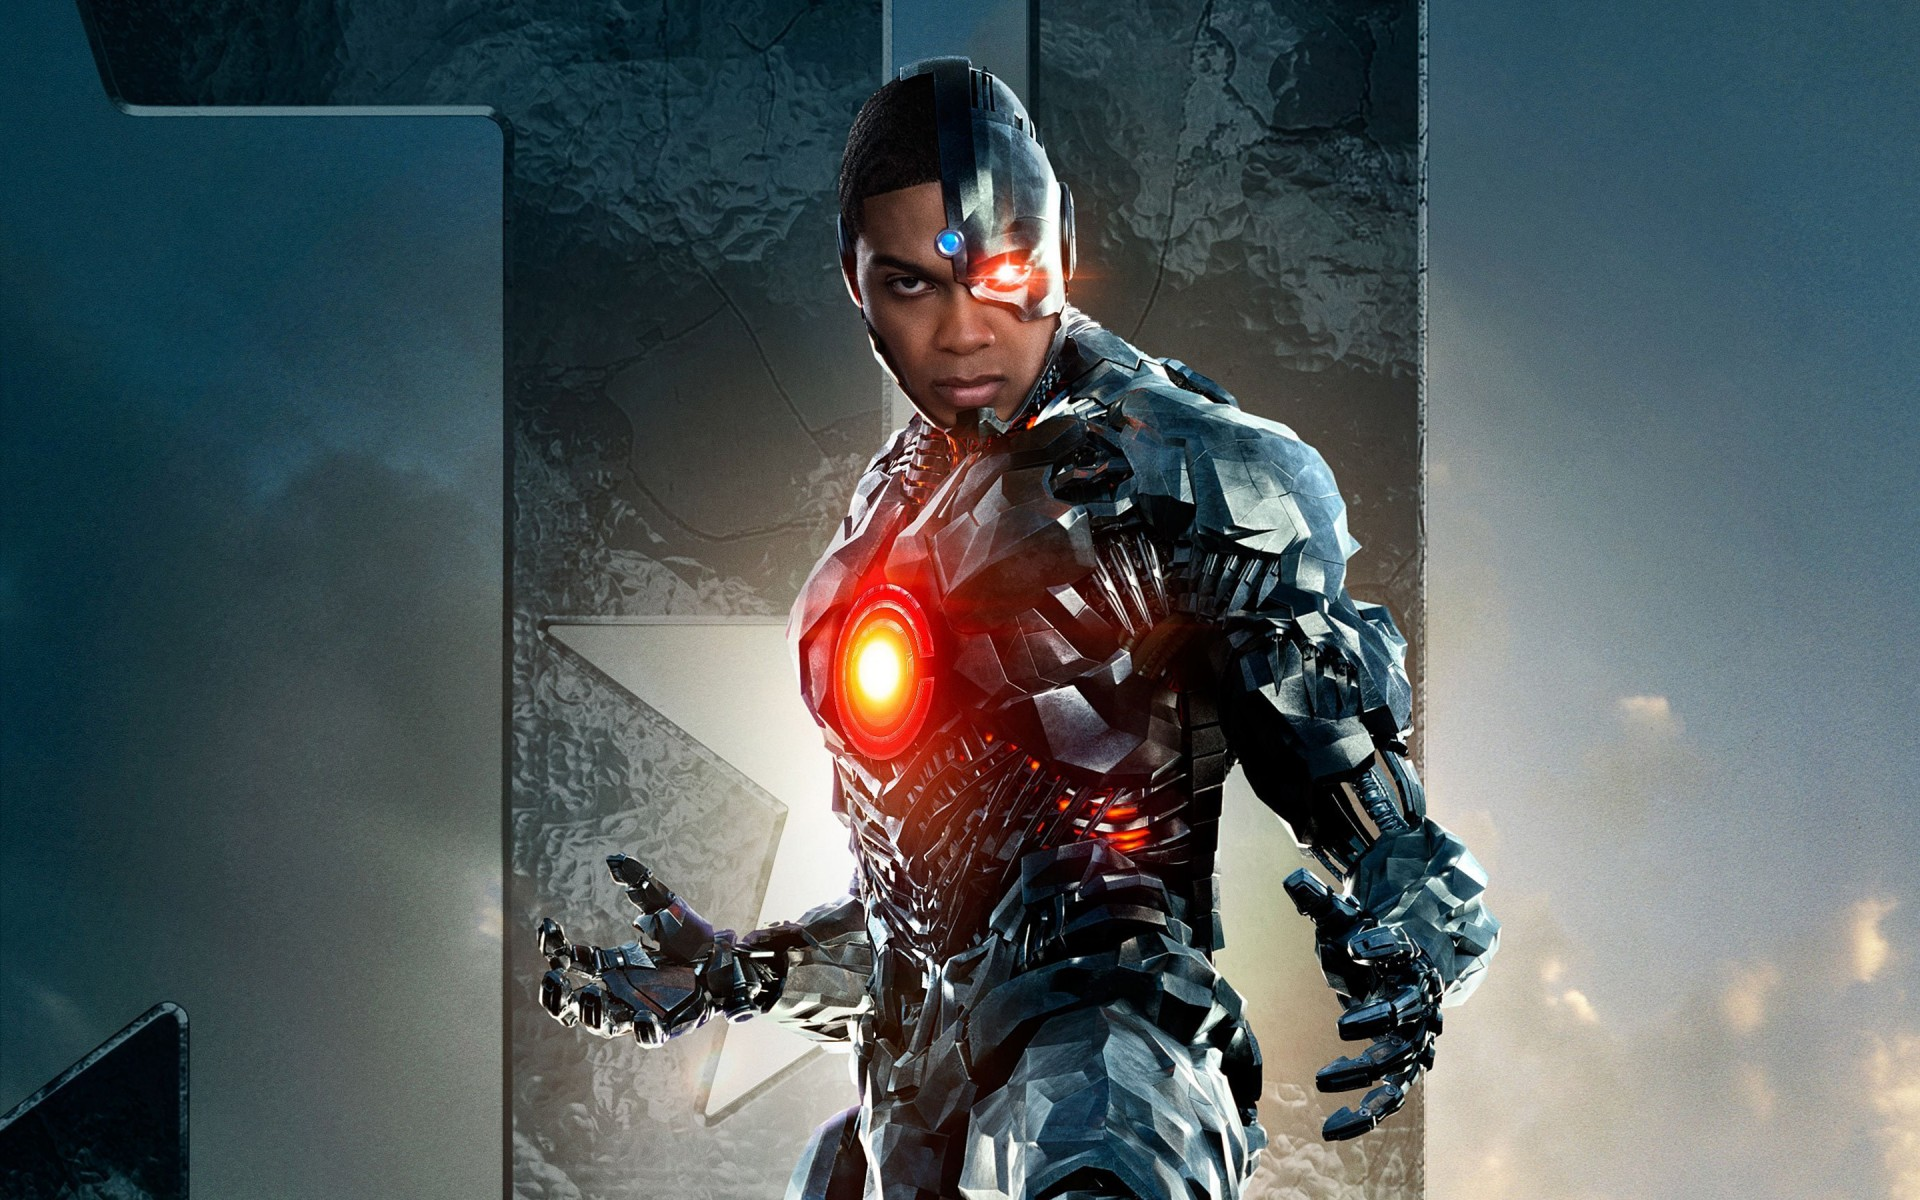 Iphone 8 Plus X Ray Wallpaper Cyborg In Justice League Wallpapers Hd Wallpapers Id